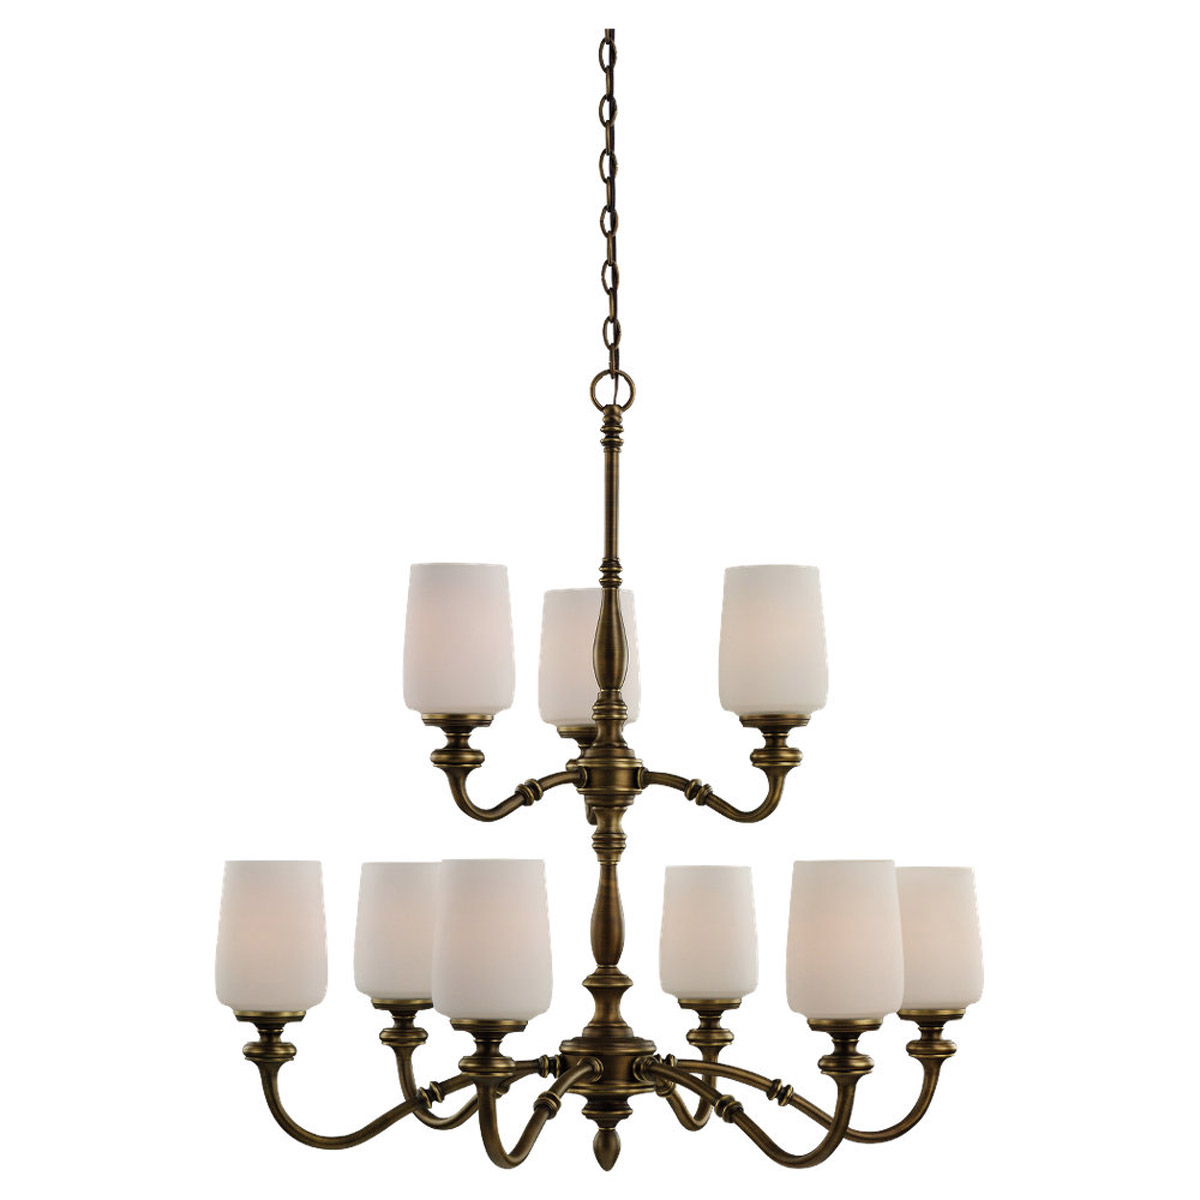 Sea Gull Lighting Montecristo 9 Light Chandelier in Aged Bronze 31888-898 photo